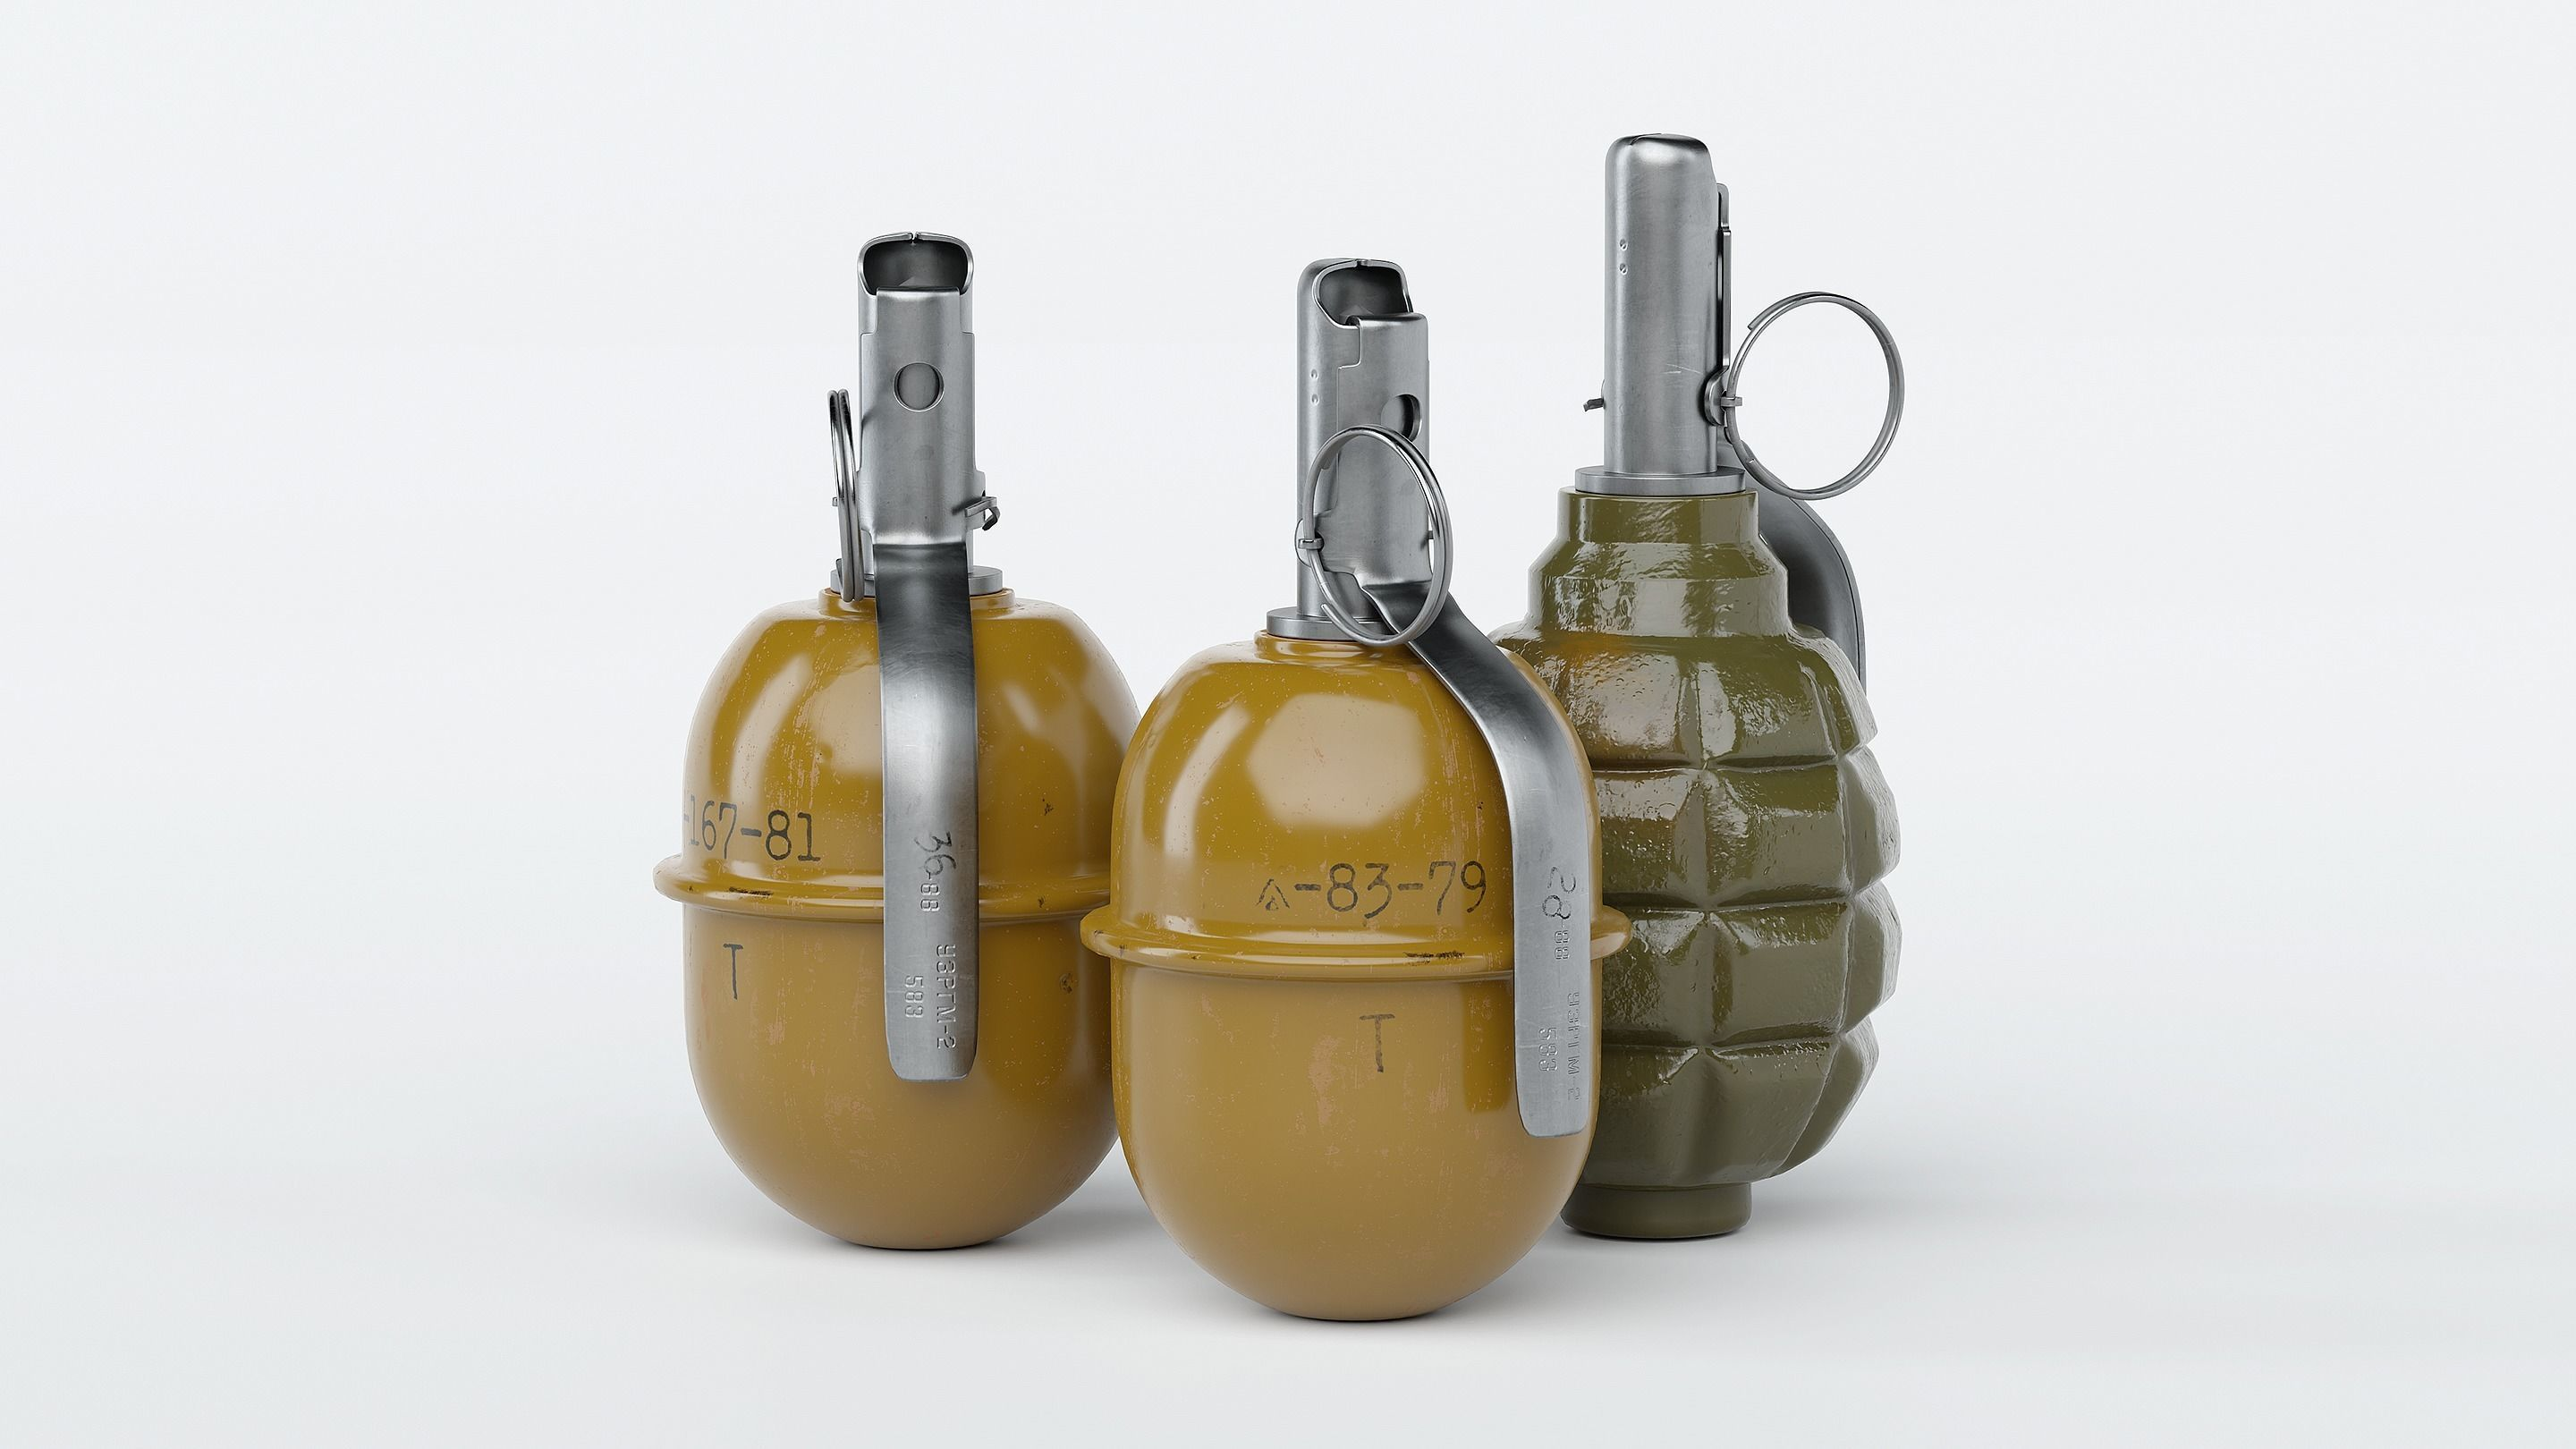 Grenade Pack - RGD-5 and F1